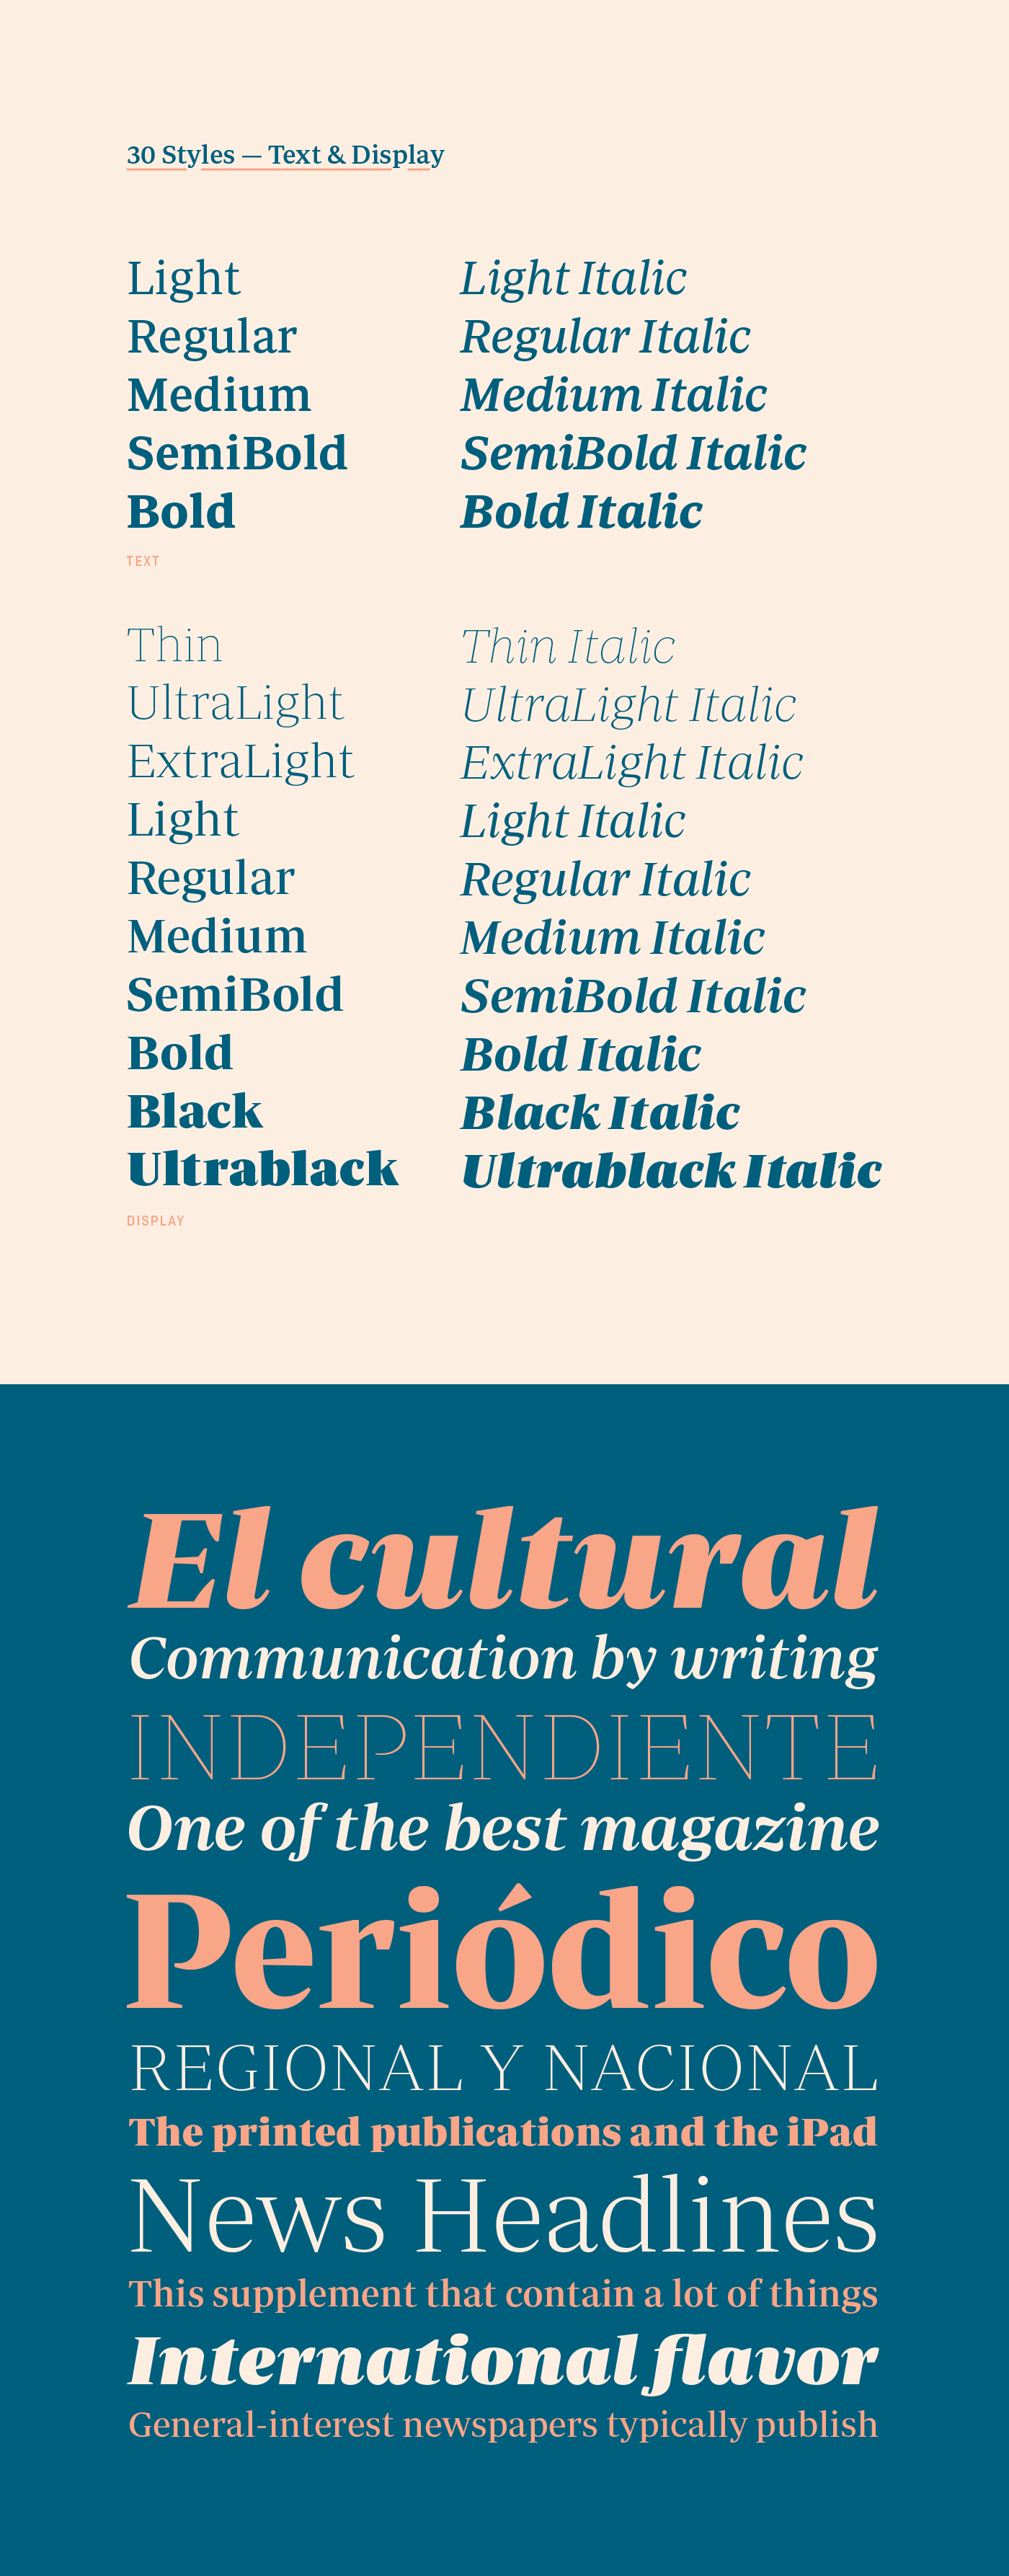 Periódico Text and Display